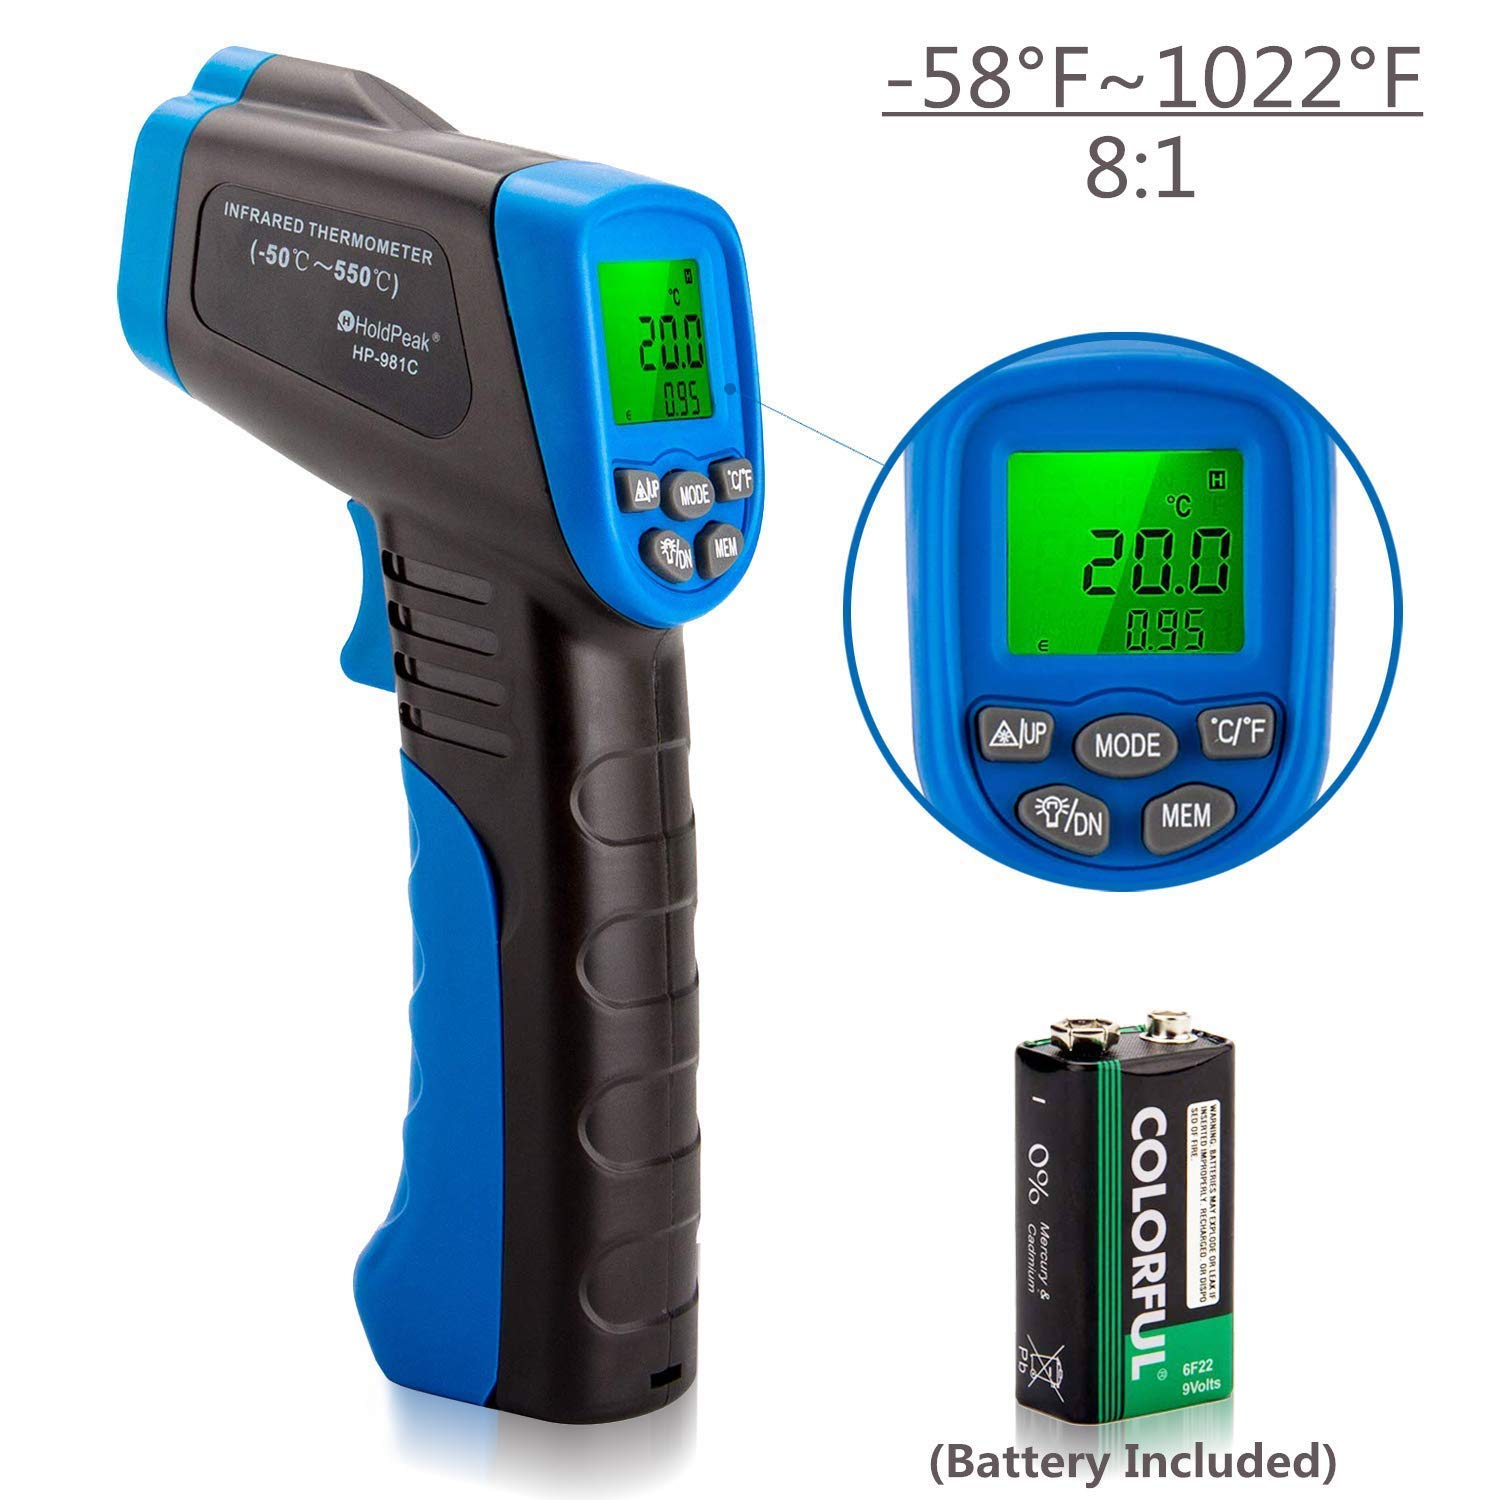 HOLDPEAK 981C Non-Contact Digital Laser Infrared Thermometer Temperature Gun Instant-read -58 to 1022℉ (-50 to 550℃) with 9V Battery and Emissivity 0.1-1.0(Adjustable)